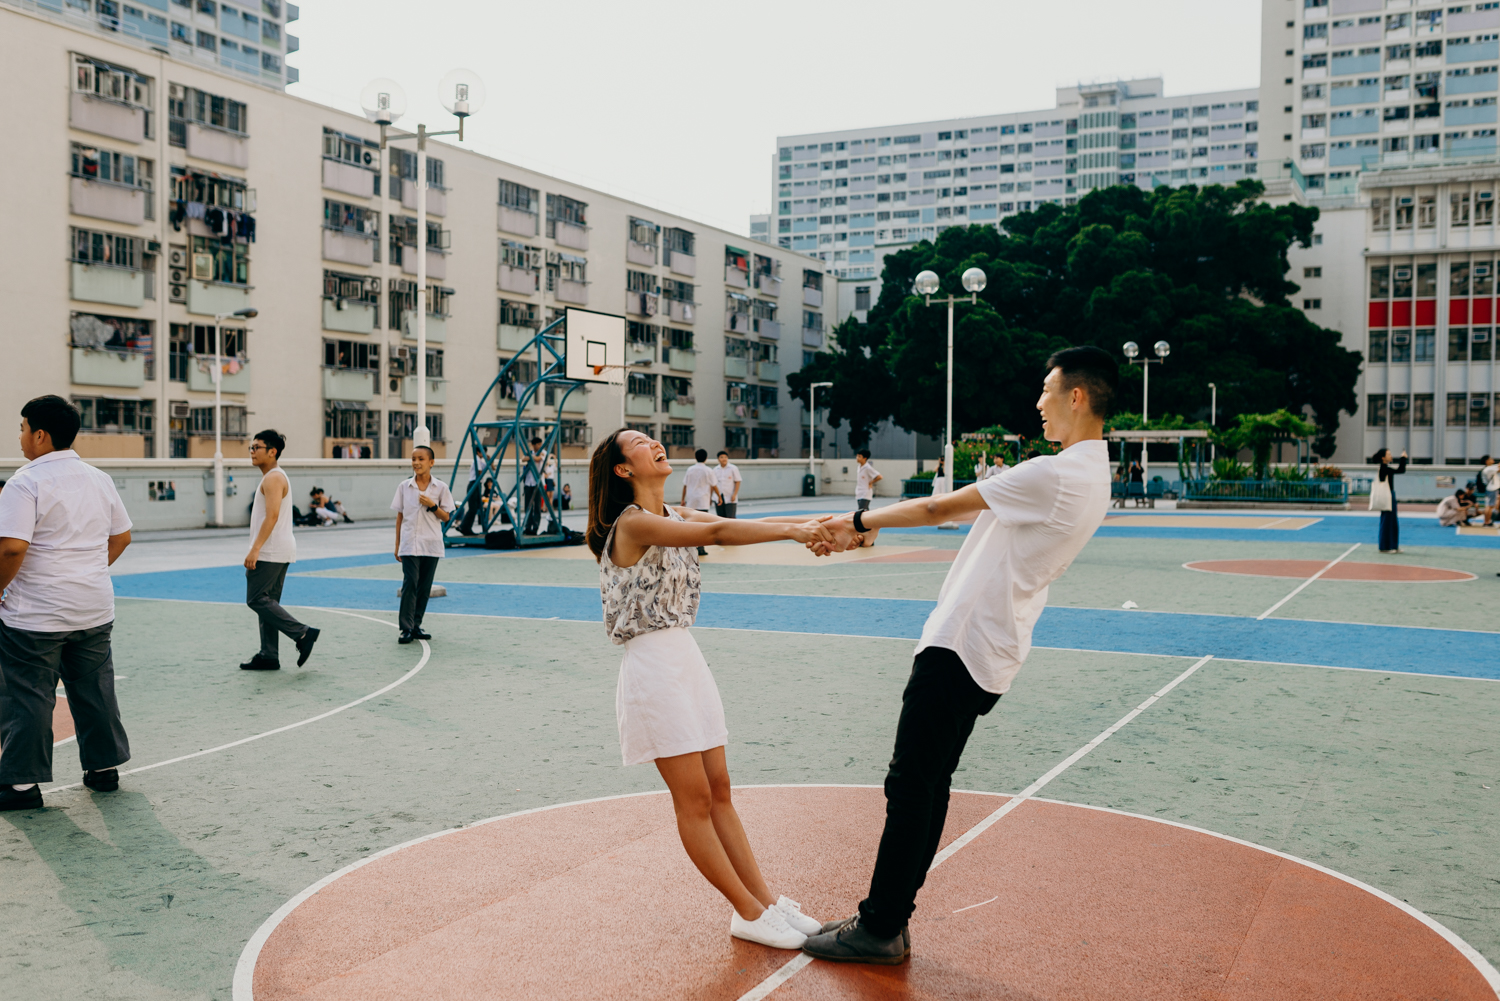 Hong_Kong_Kowloon_Destination_Engagement_Shoot-149.JPG